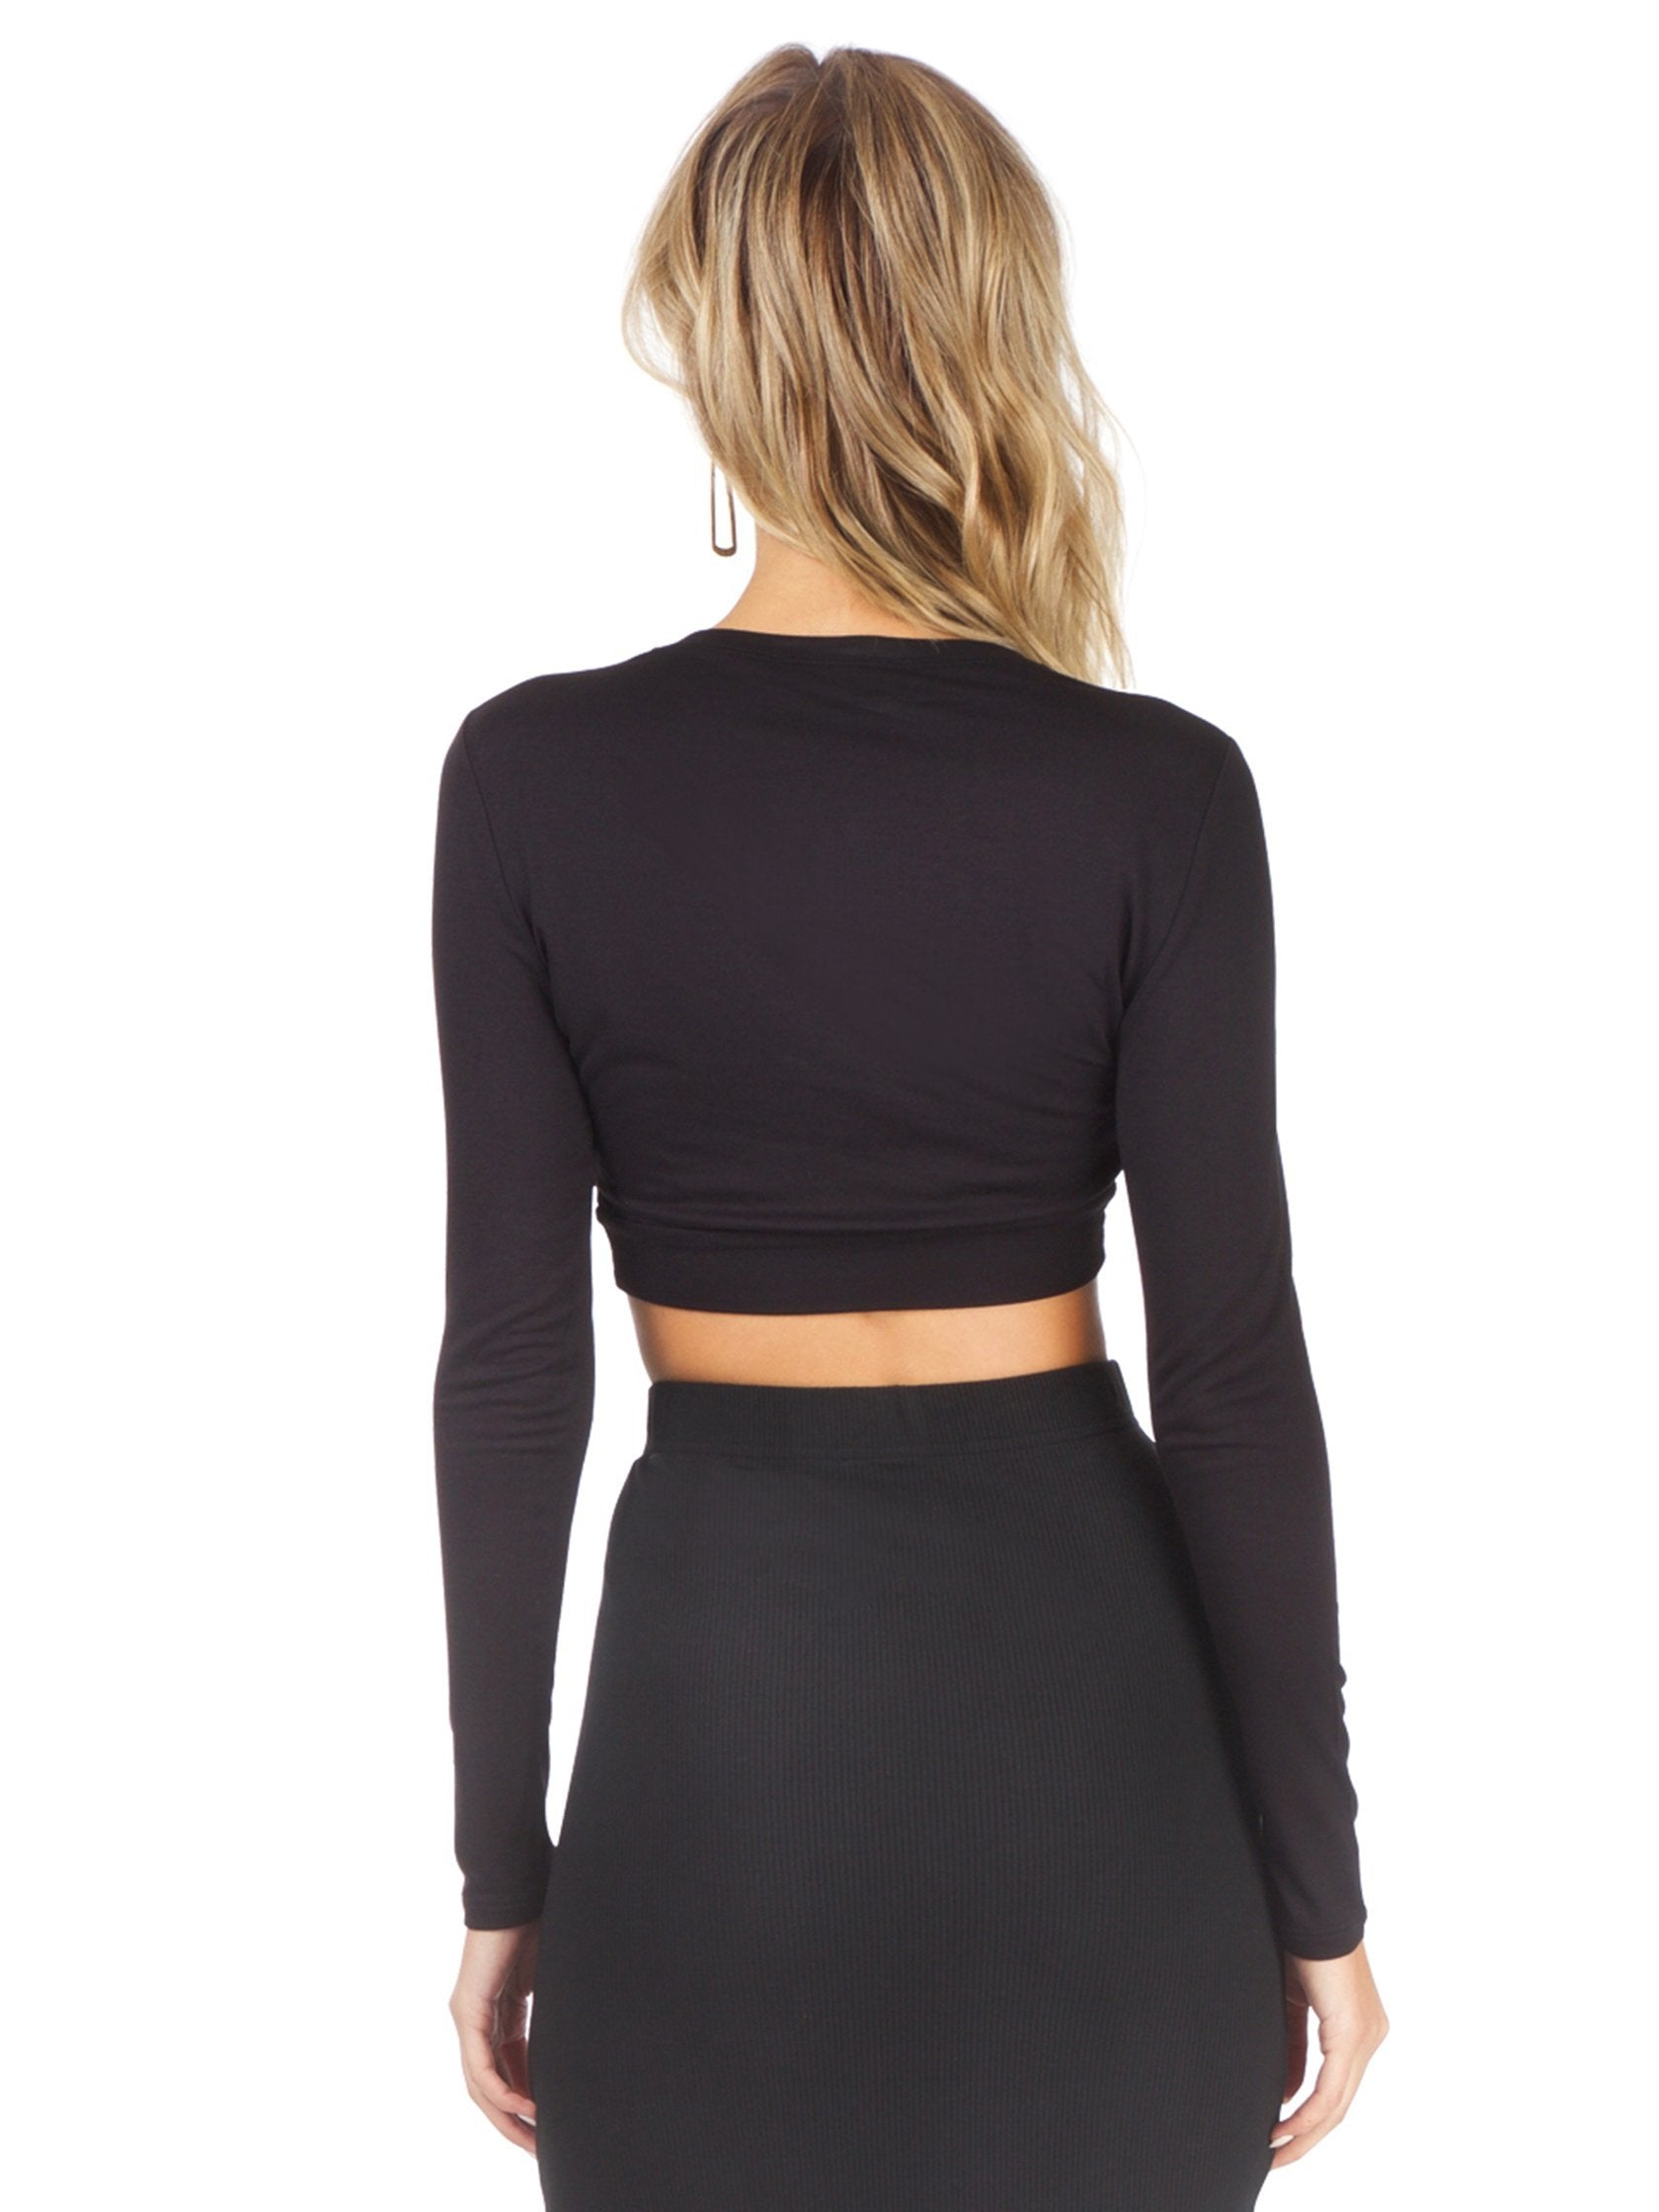 Women wearing a top rental from BCBGMAXAZRIA called Twisted Crop Top